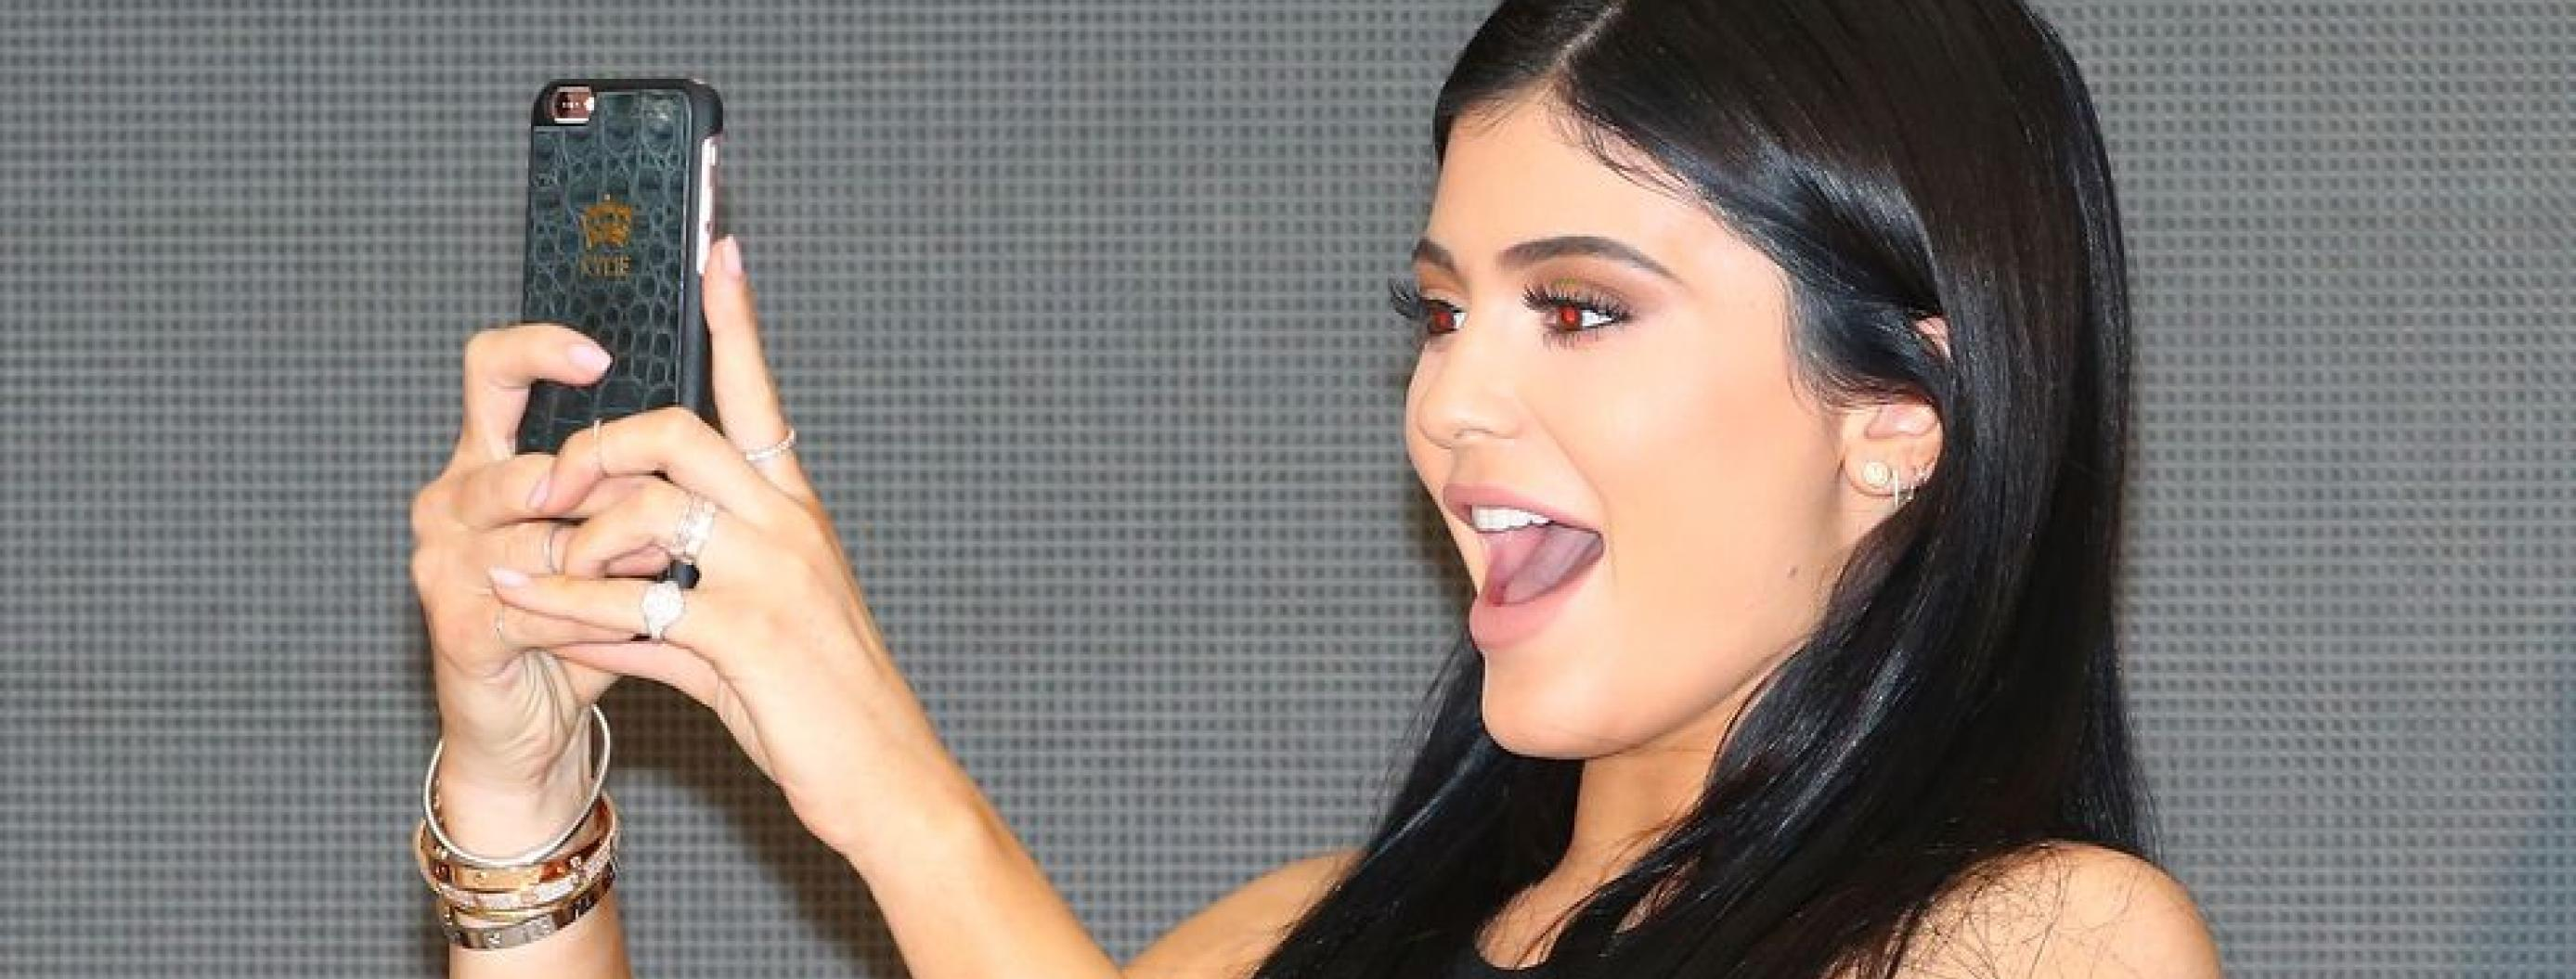 Kylie Jenner Caused Snapchat's Value to Plummet by £1 Billion with One Single Tweet